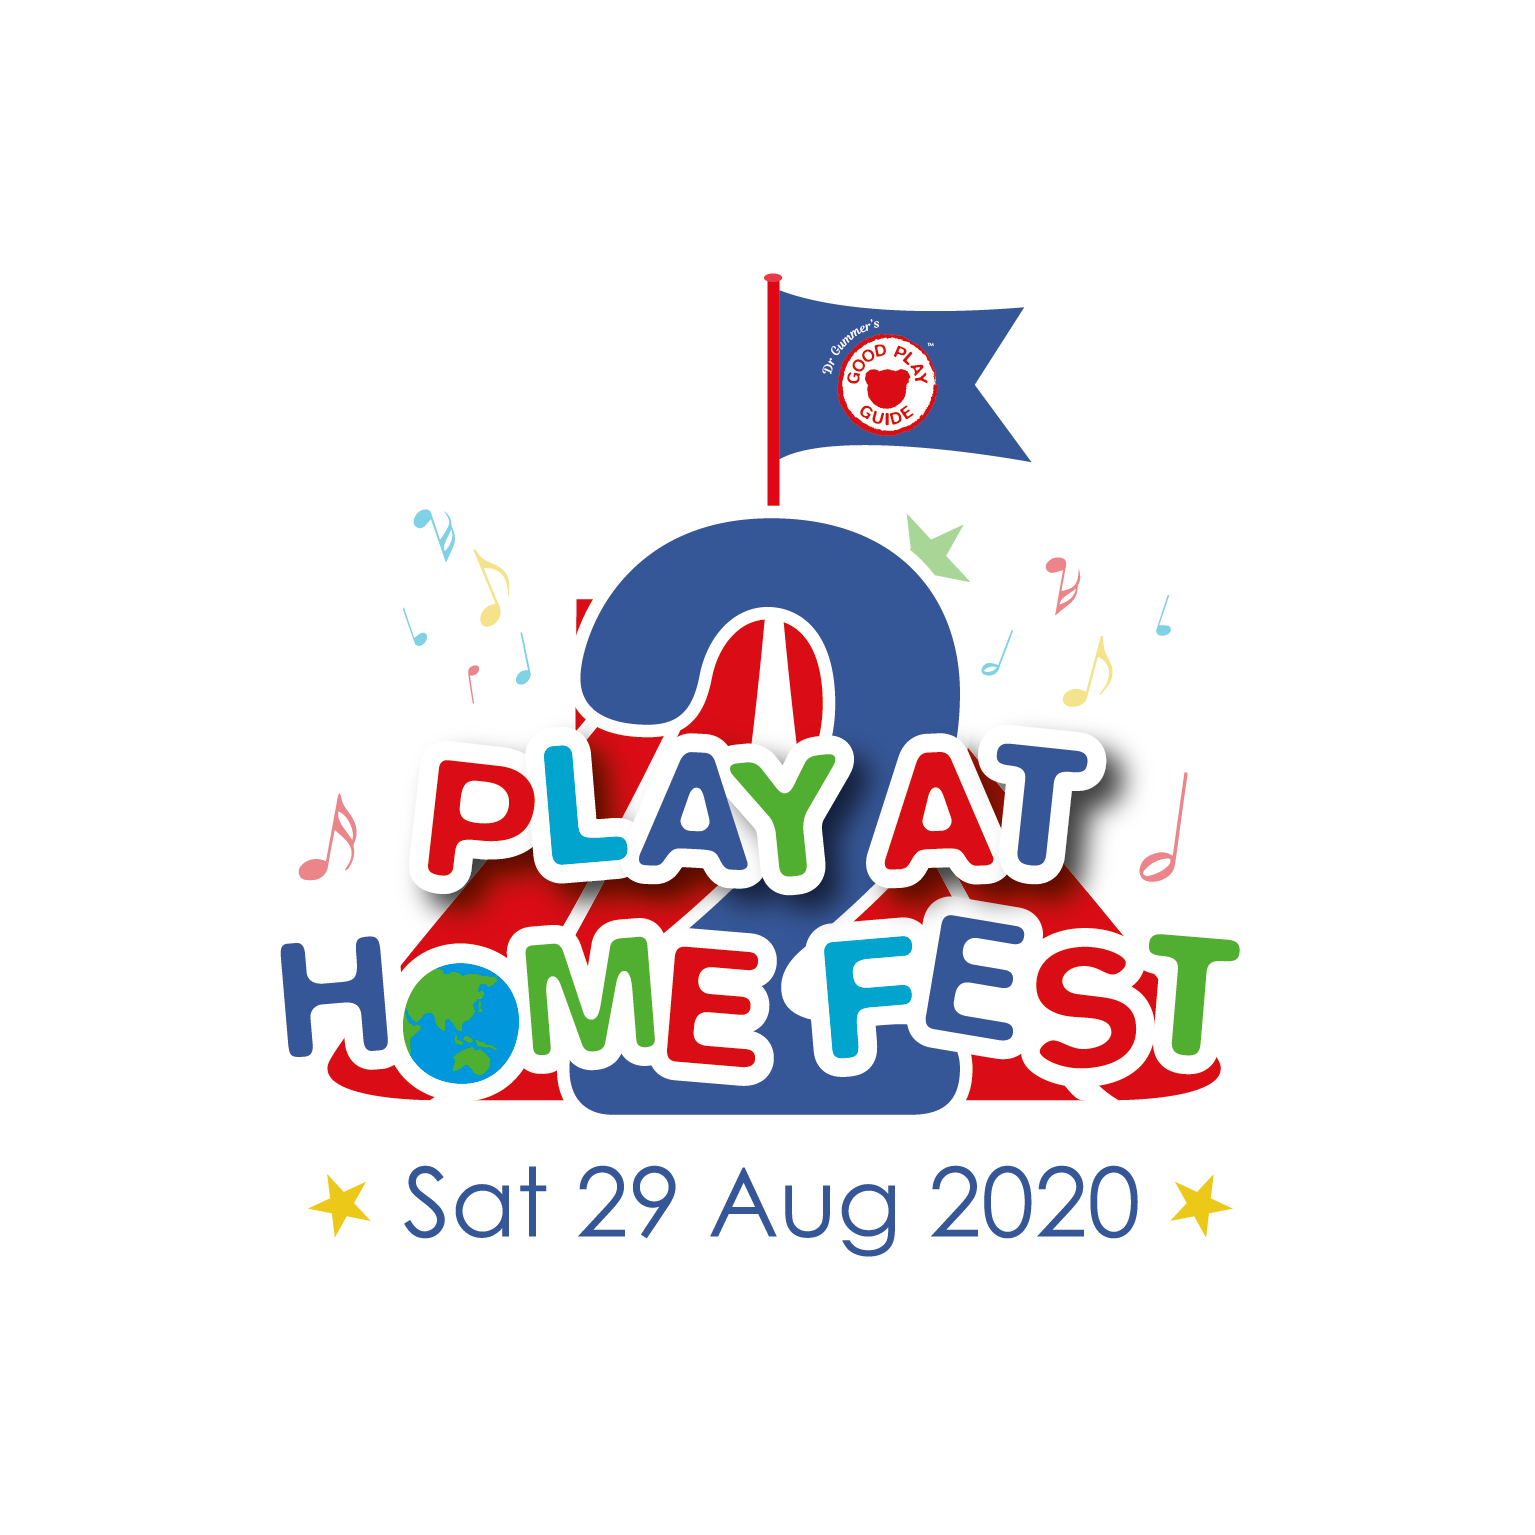 Play at Home Fest 2.0 's logo